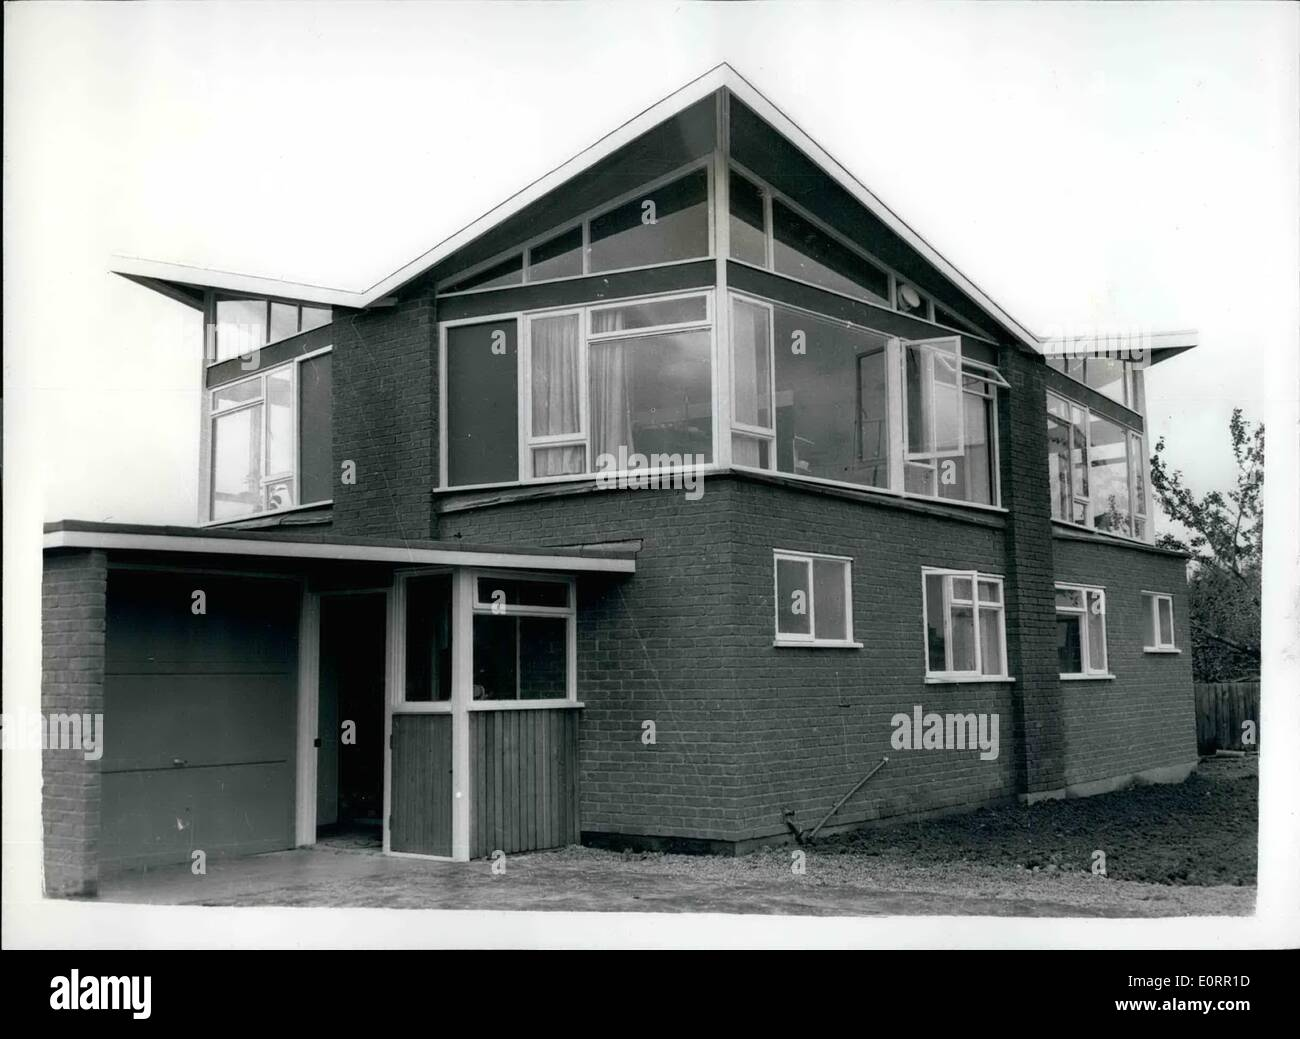 May 05, 1960 - Press preview of the new ''Package Deal'' homes. Exterior View: A press preview was held this afternoon at Gentebury of the new ''Package Deal'' homes - built by Jonmill Developments roofs - central heating throughout fitted furnishings - kitchen units etc. integral garages etc. The idea is for the purchaser to walk direct into the house - which is ready for occupation. The builders cope with everything - including arranging for the mortga etc. The Bedrooms are situated downstairs - Stock Image